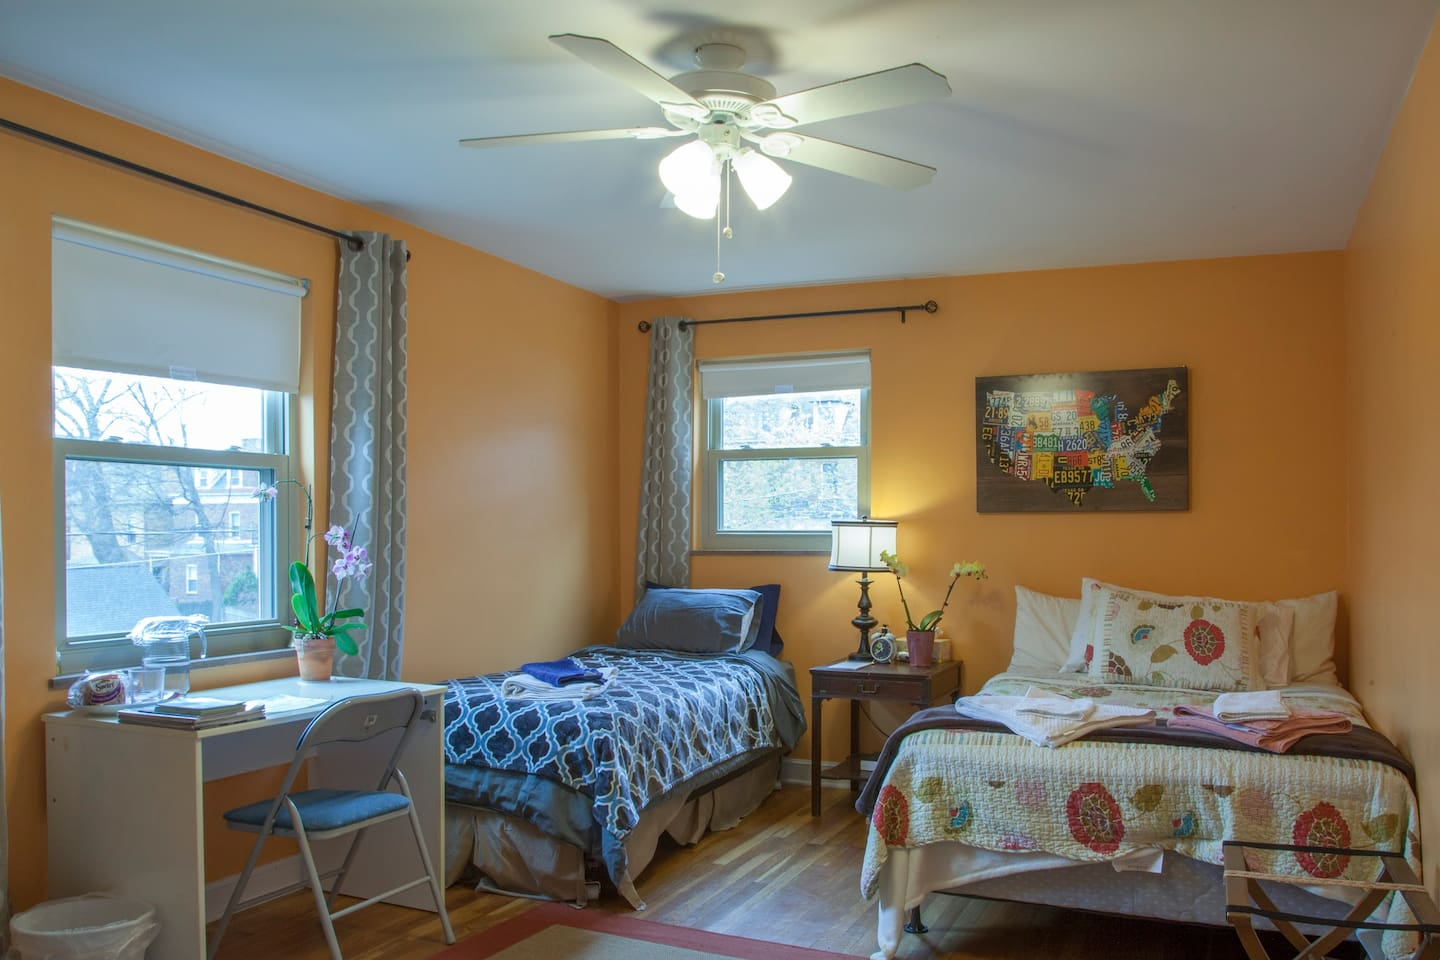 Very spacious bedroom full of natural light. Includes a twin bed, full size bed, Study desk, and couch. (see next picture)